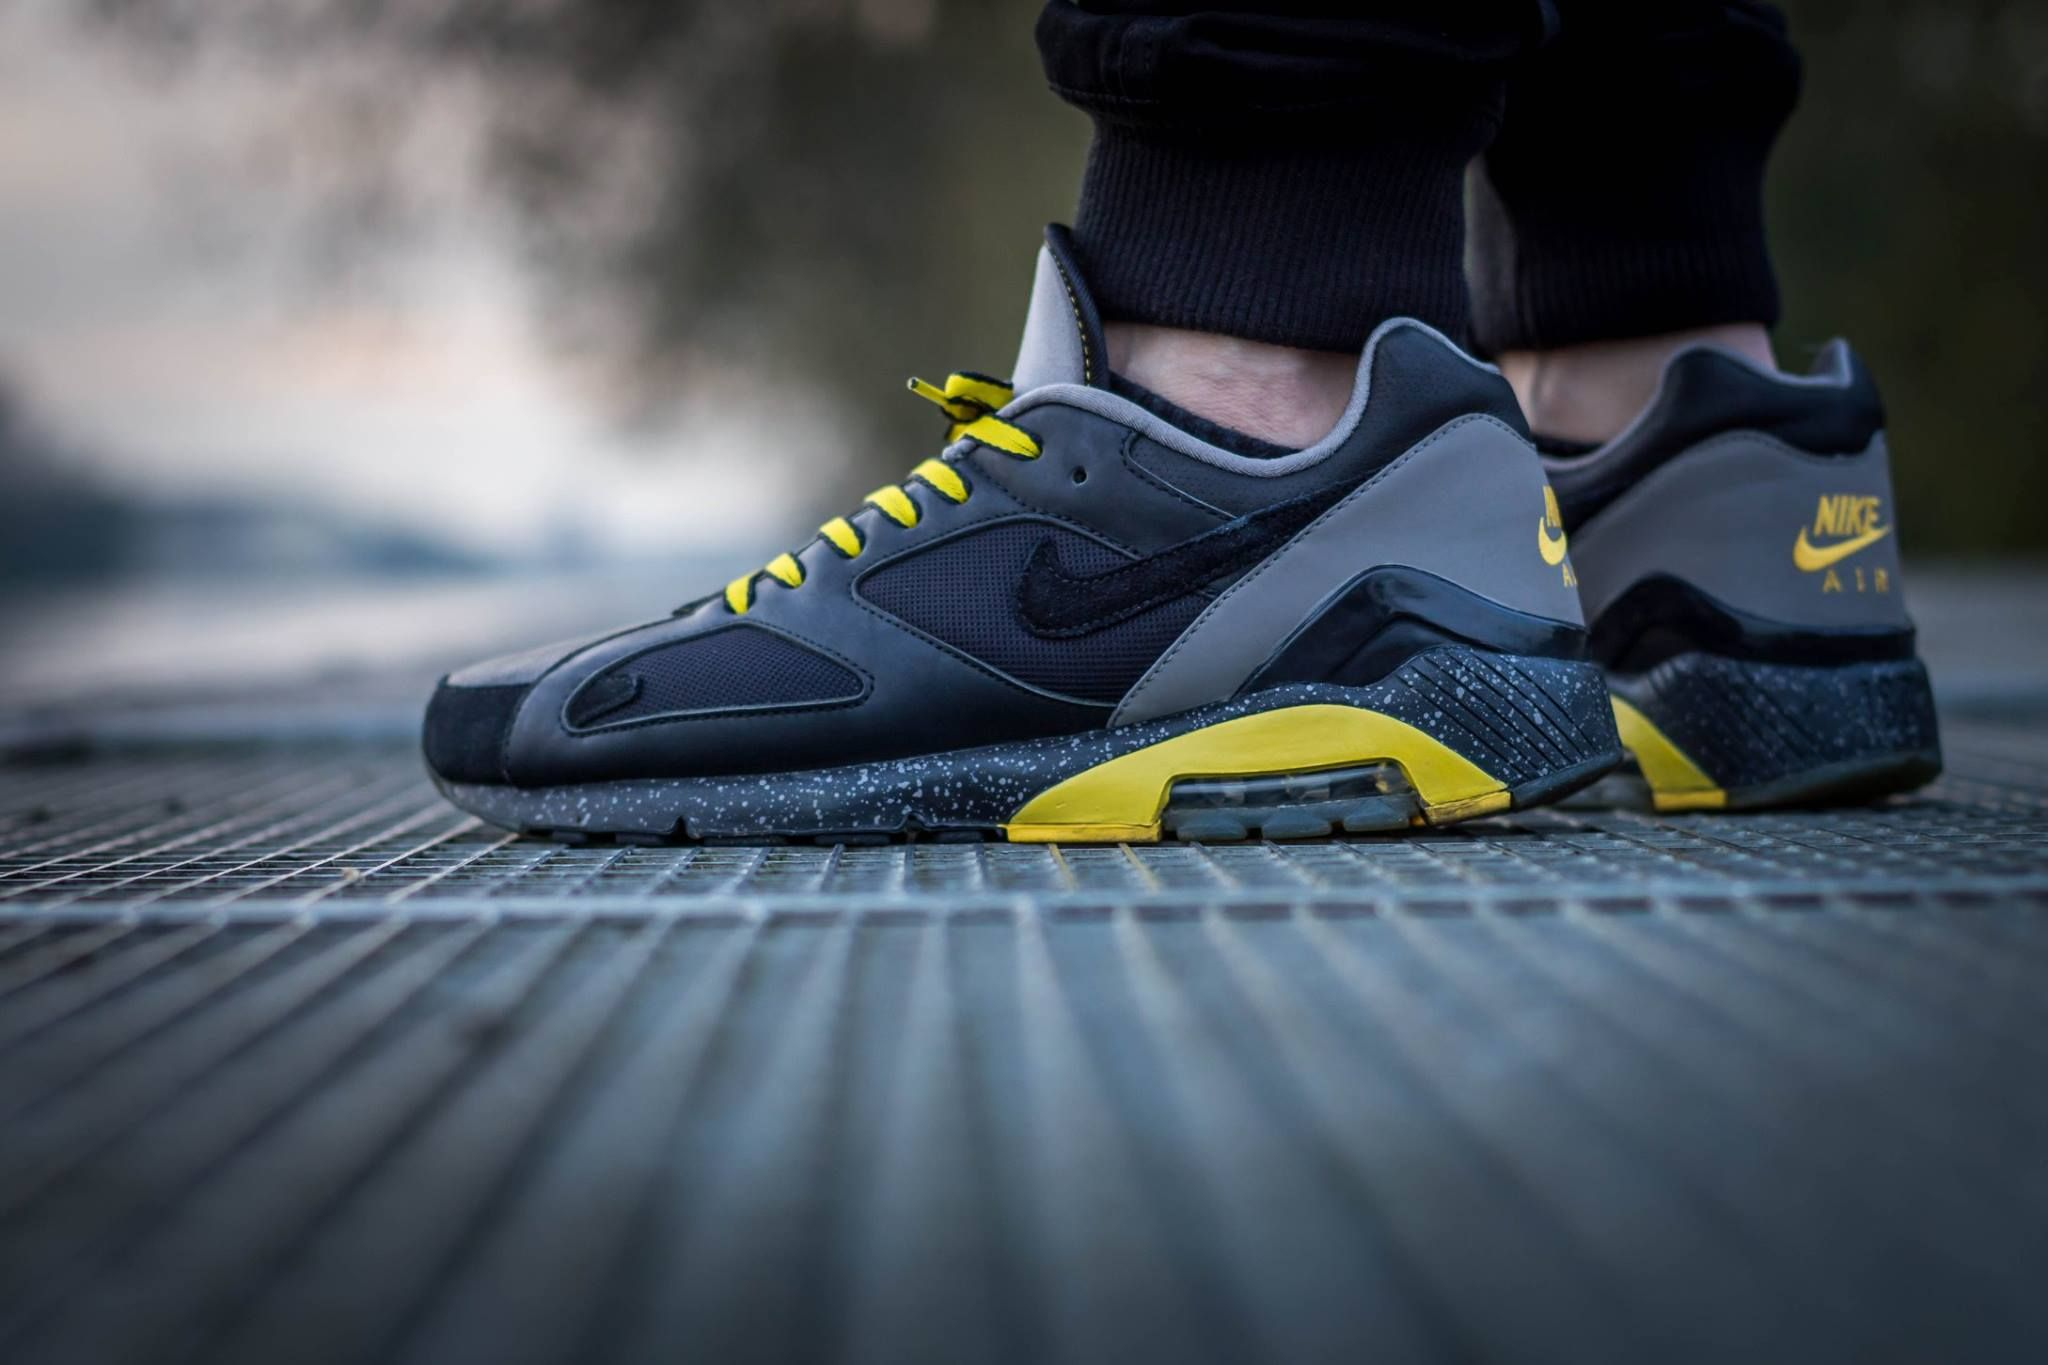 Idée et inspiration Sneakers Nike Image Description Nike Air Max 180 ' Livestrong'